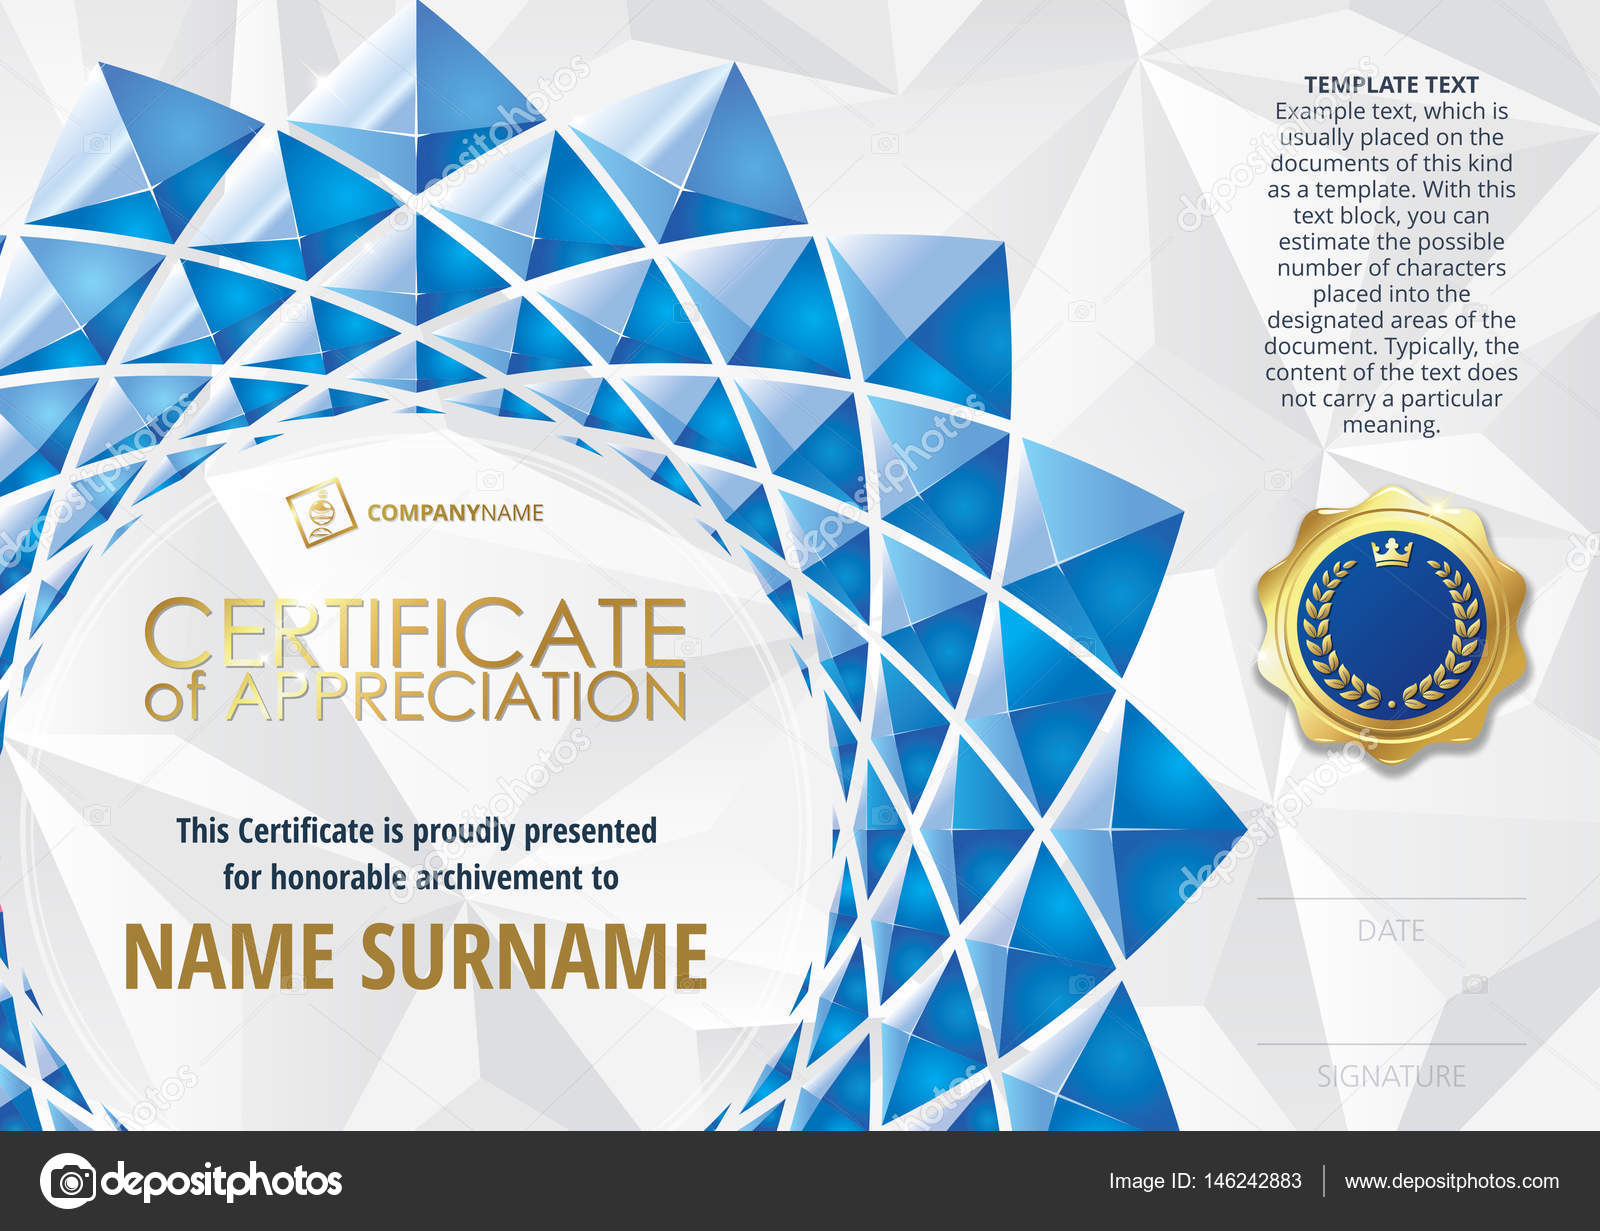 Template of certificate of appreciation with golden badge with template of certificate of appreciation with golden badge with flower shaped elements of blue triangles yadclub Images